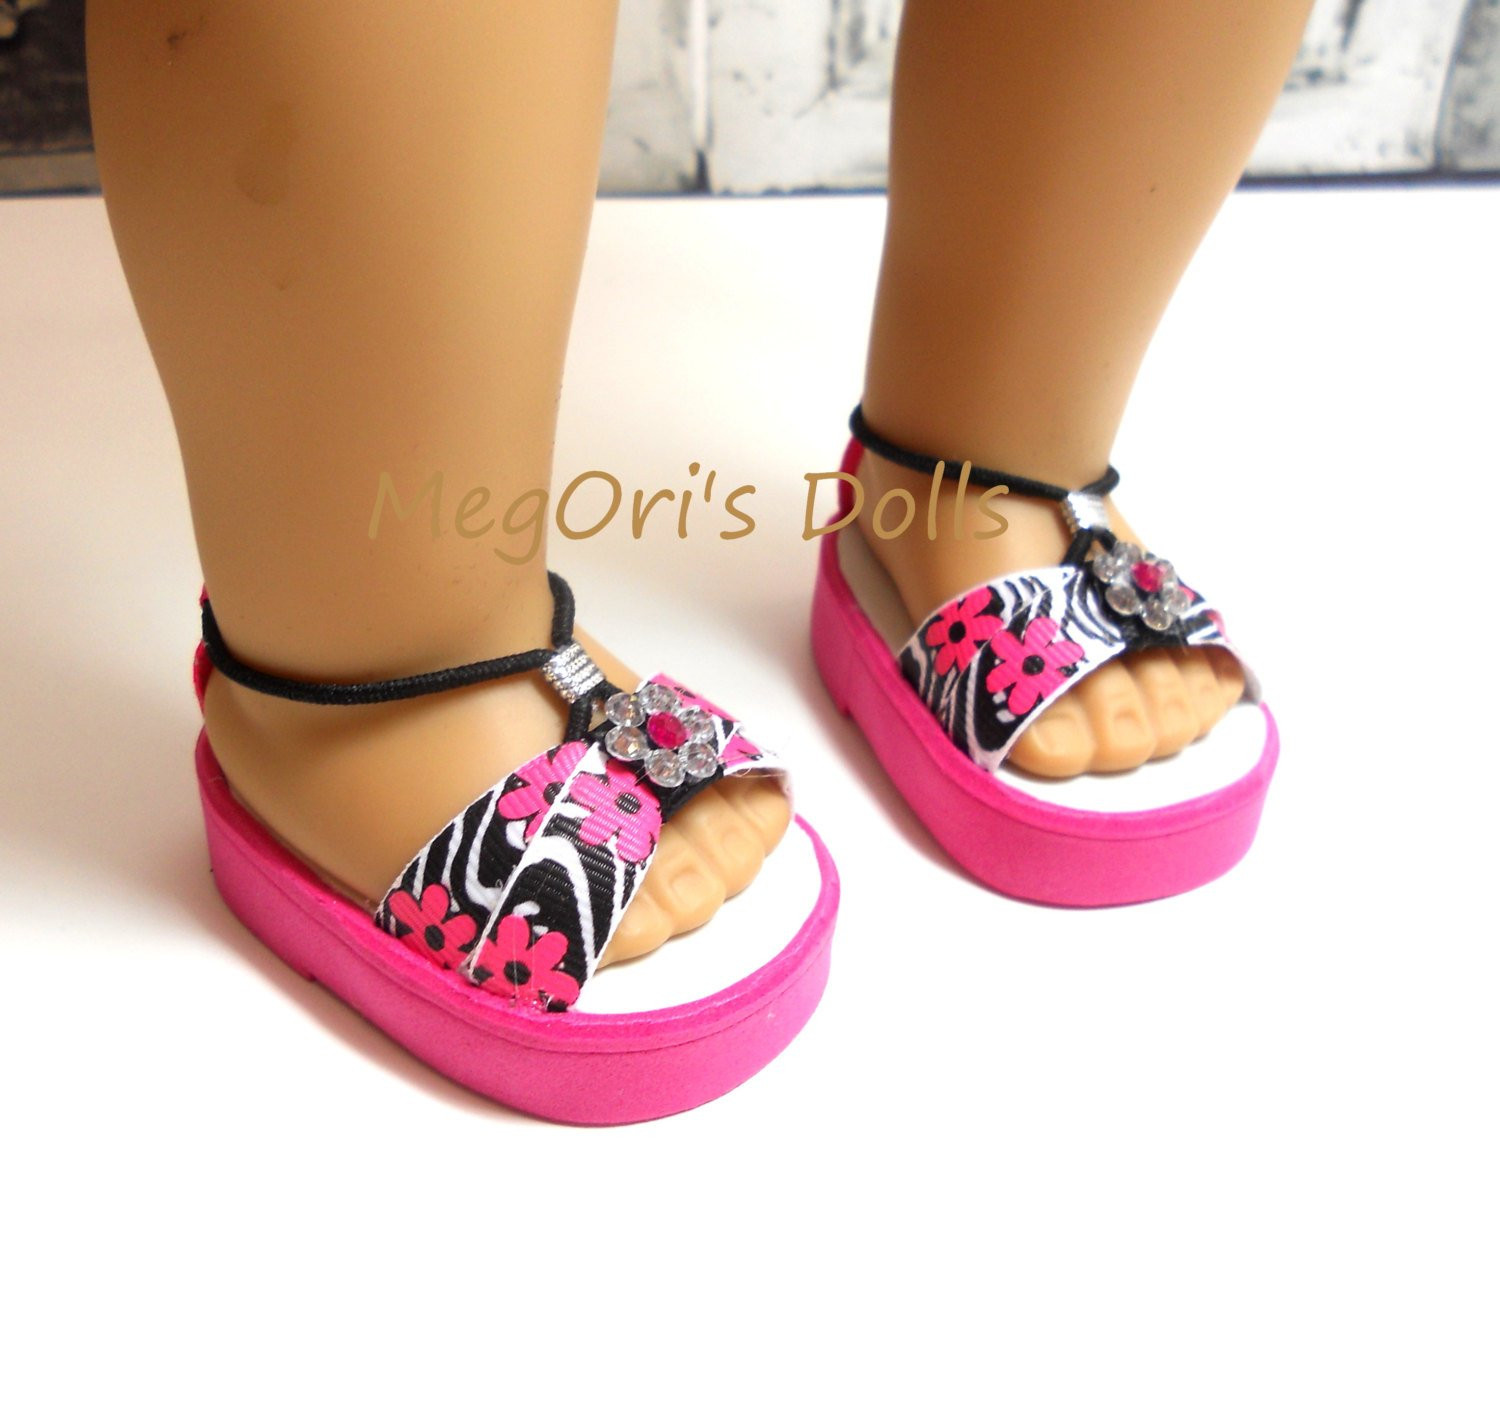 Lovely American Girl Doll Shoes Sandals Fuchsia Deep Pink by Ag Doll Shoes Of Superb 49 Photos Ag Doll Shoes